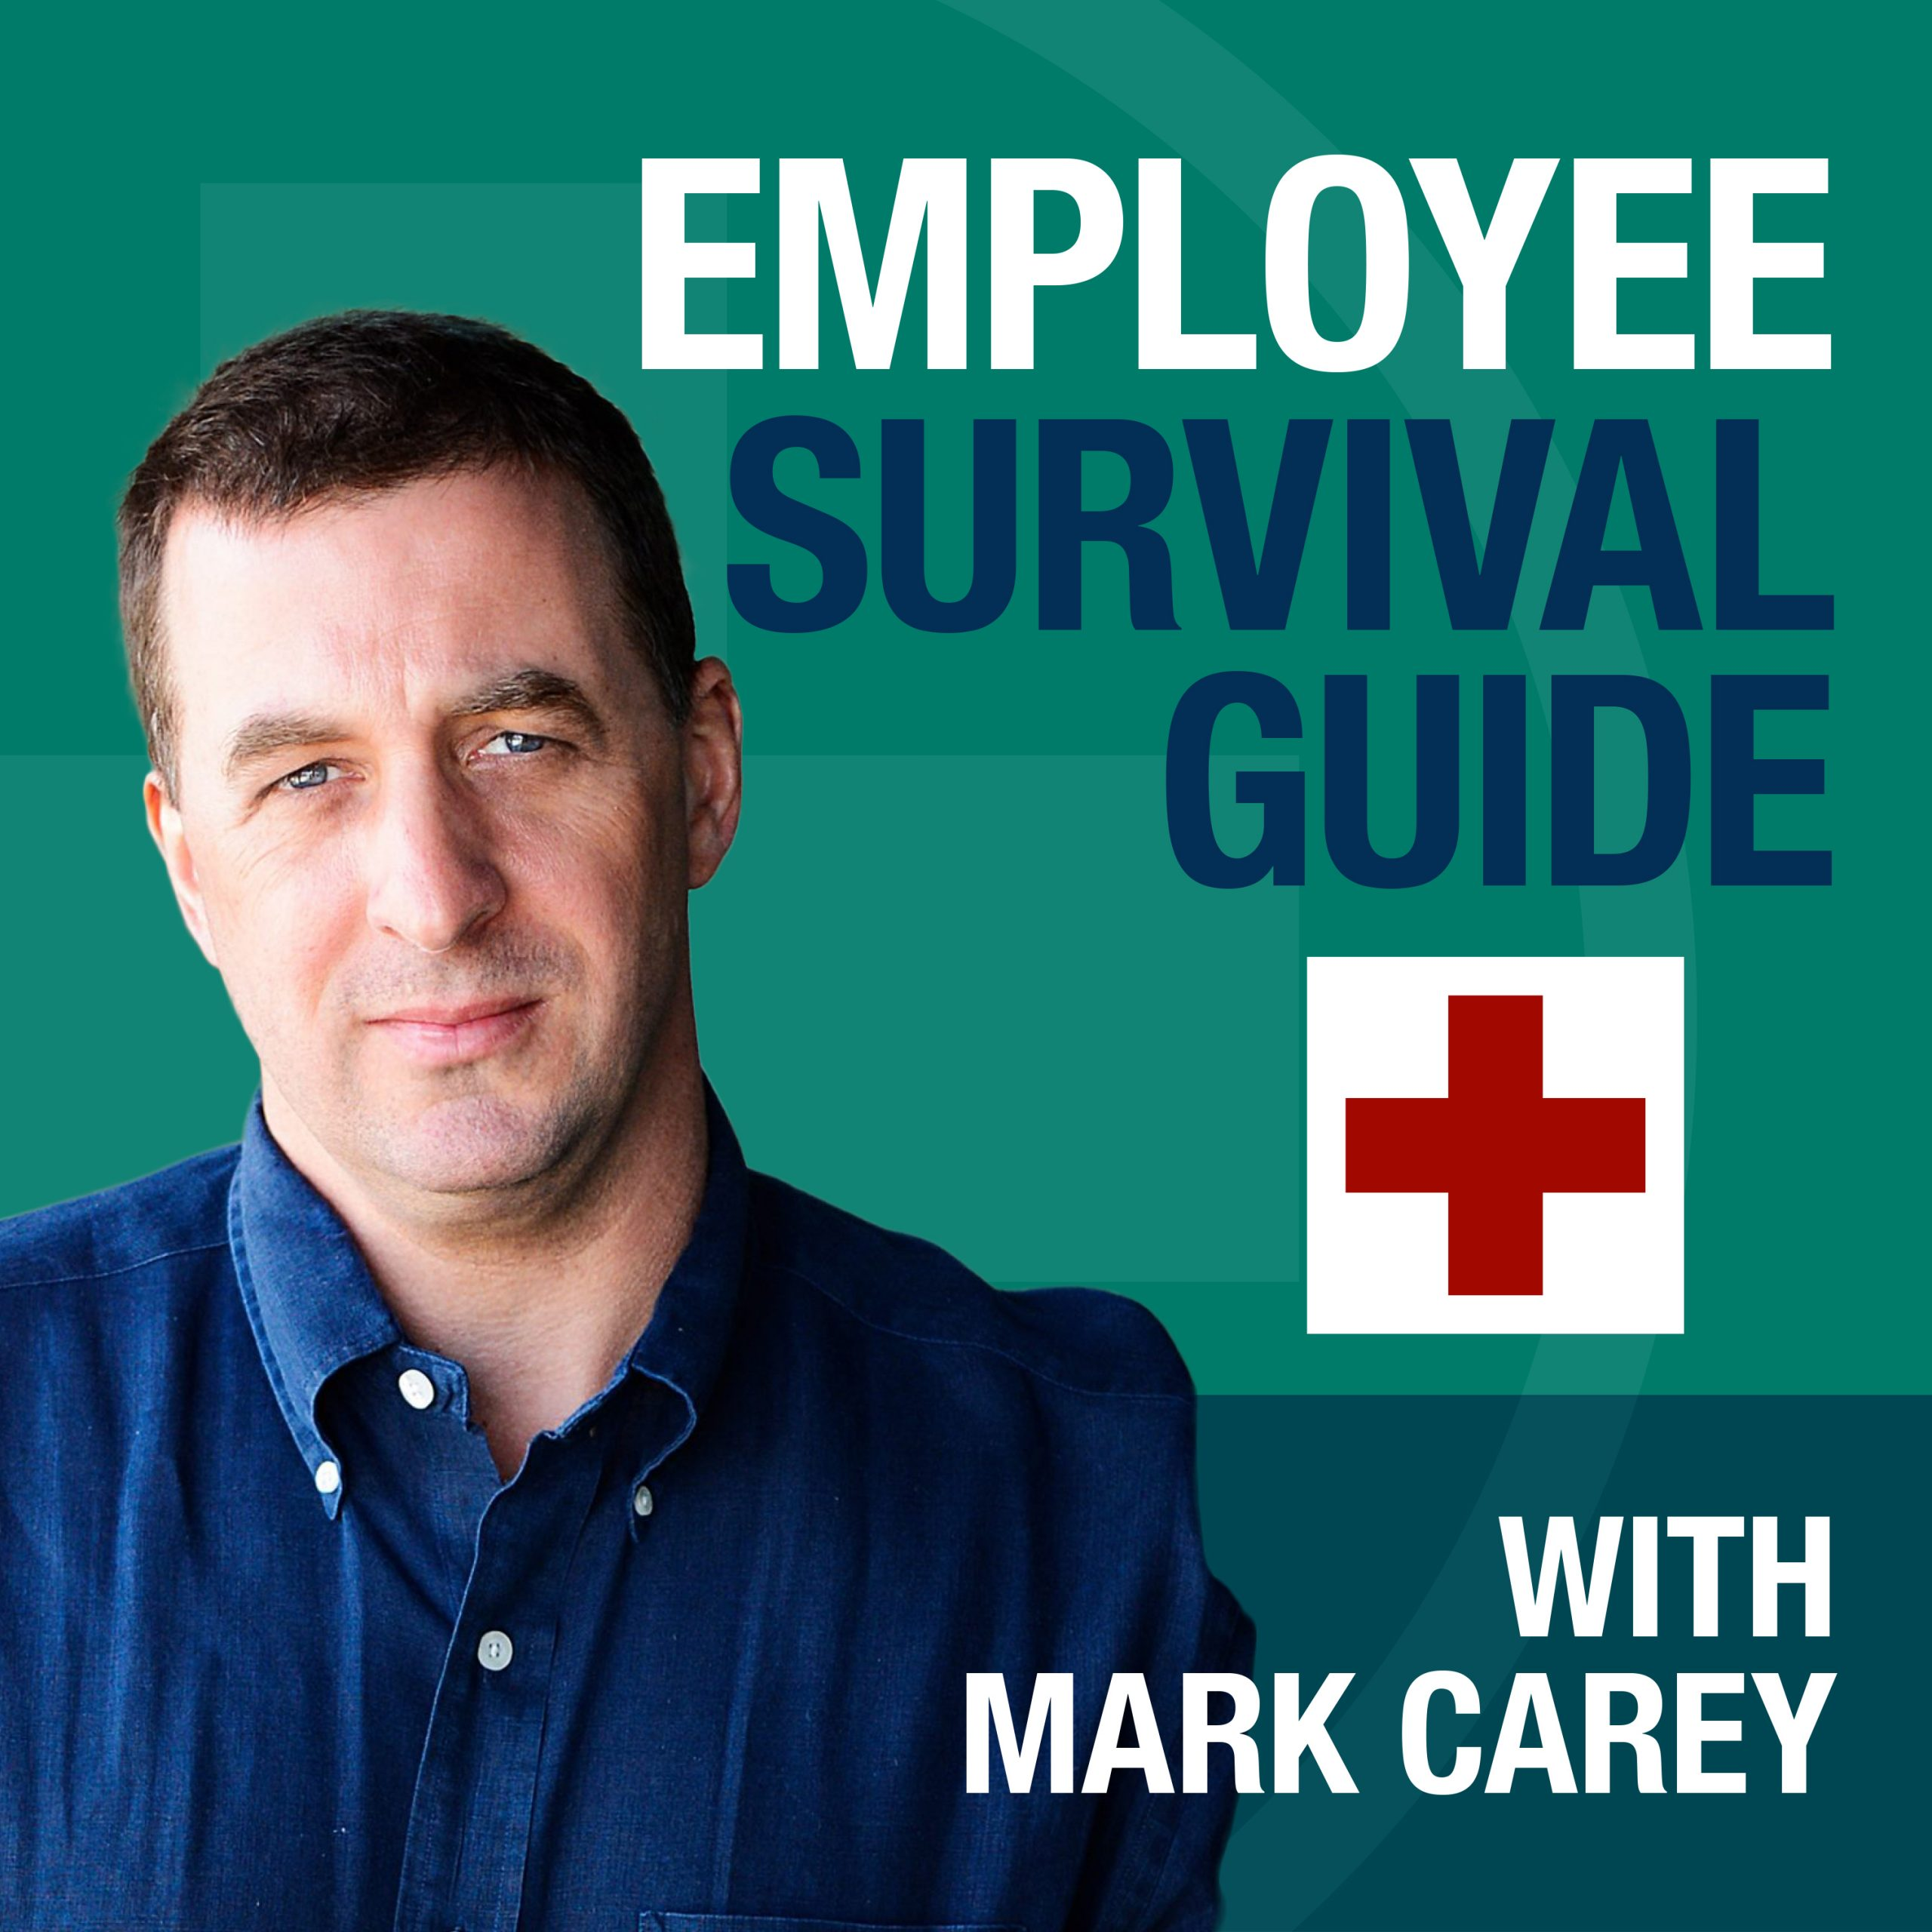 Employee Survival Guide With Mark Carey